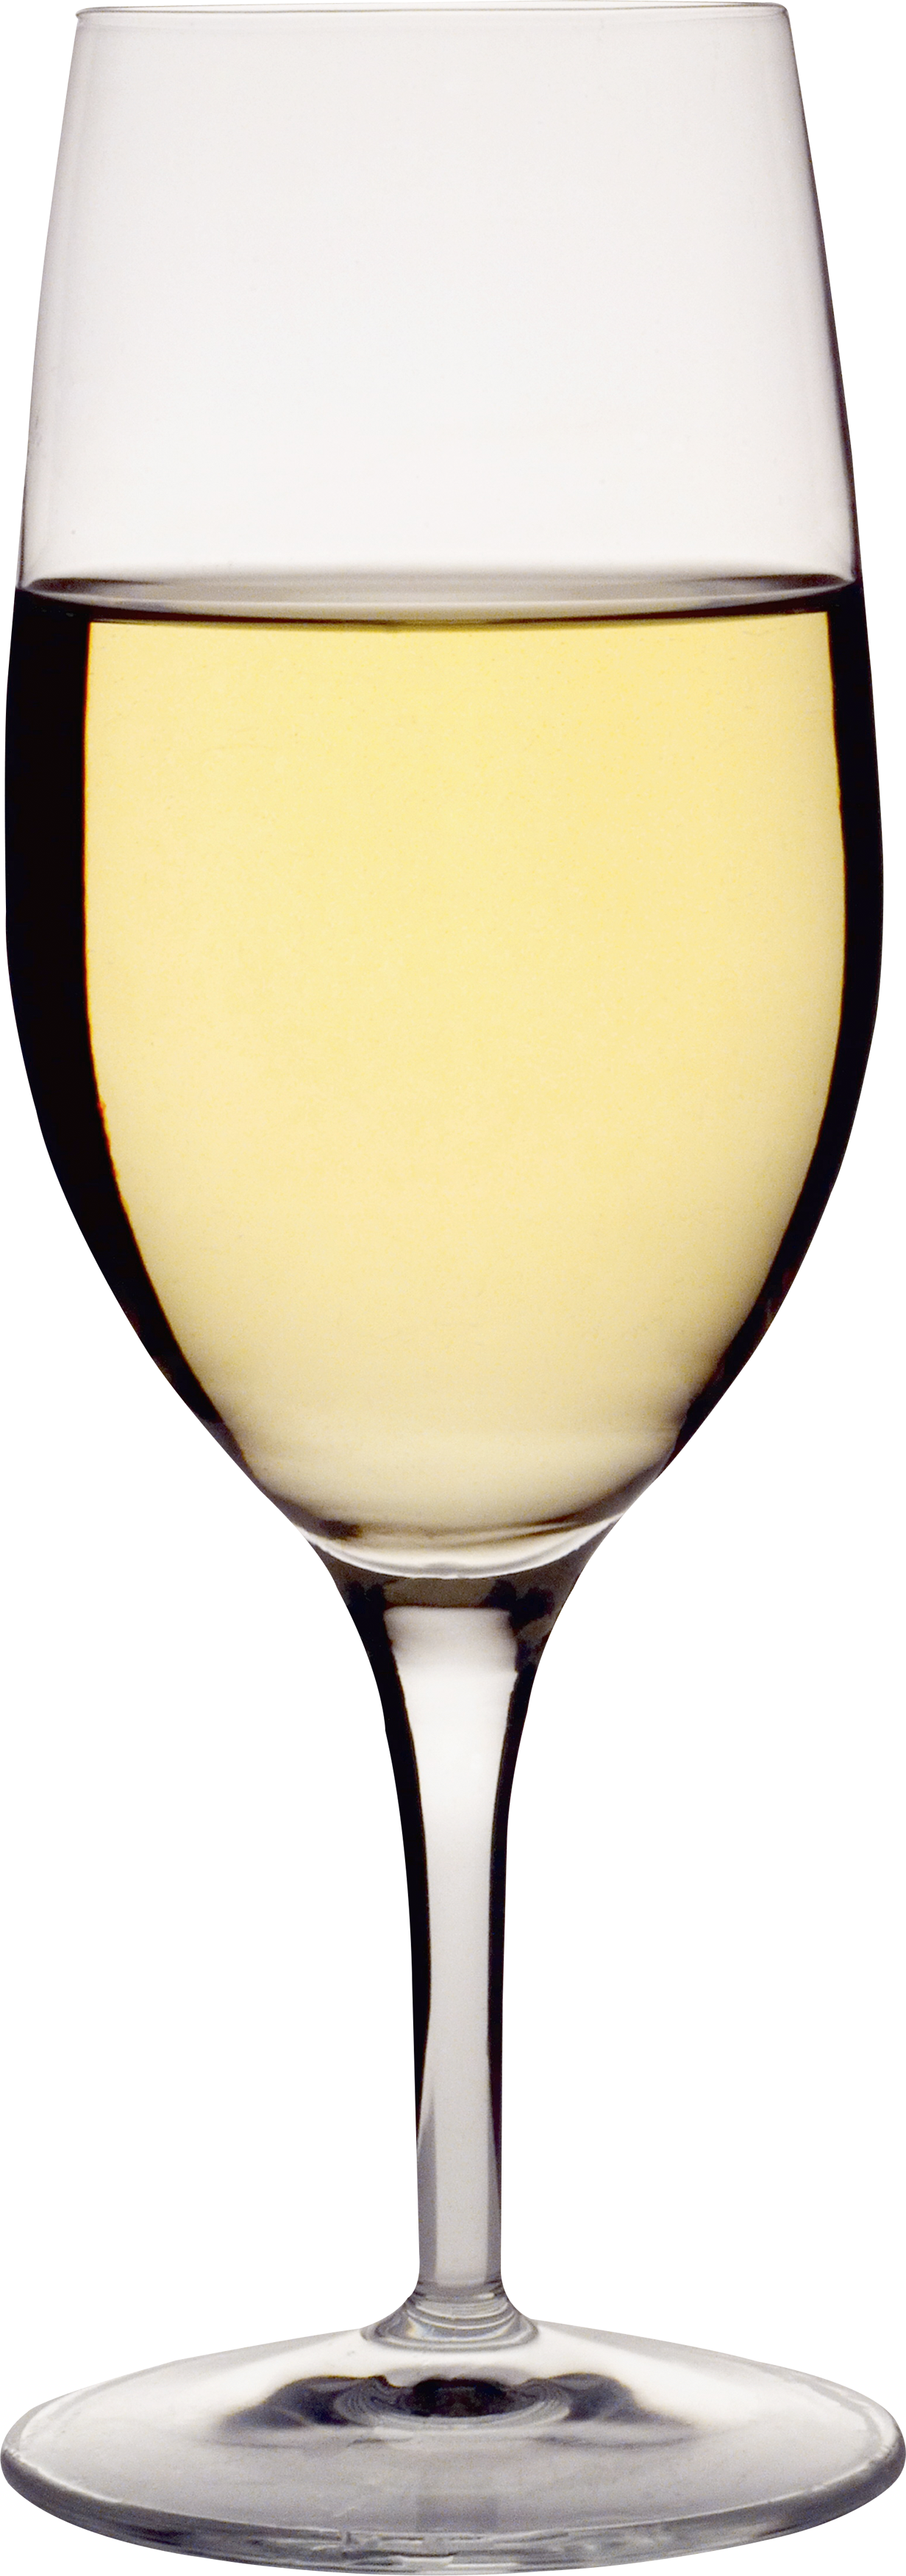 Champagne pouring png. Wine images free download